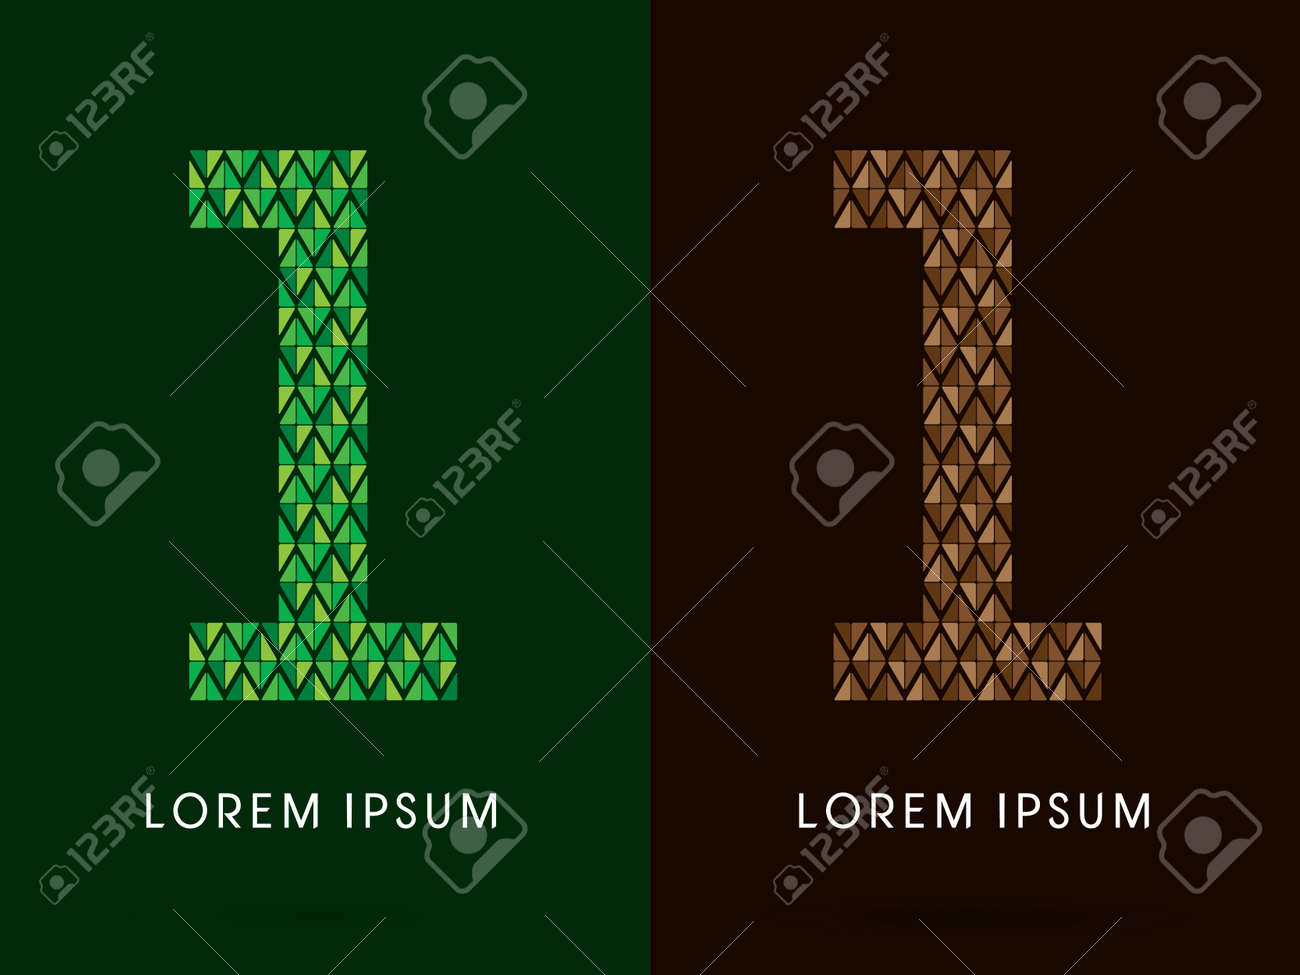 1 Font Concept Leaf And Rock Designed Using Colors Green